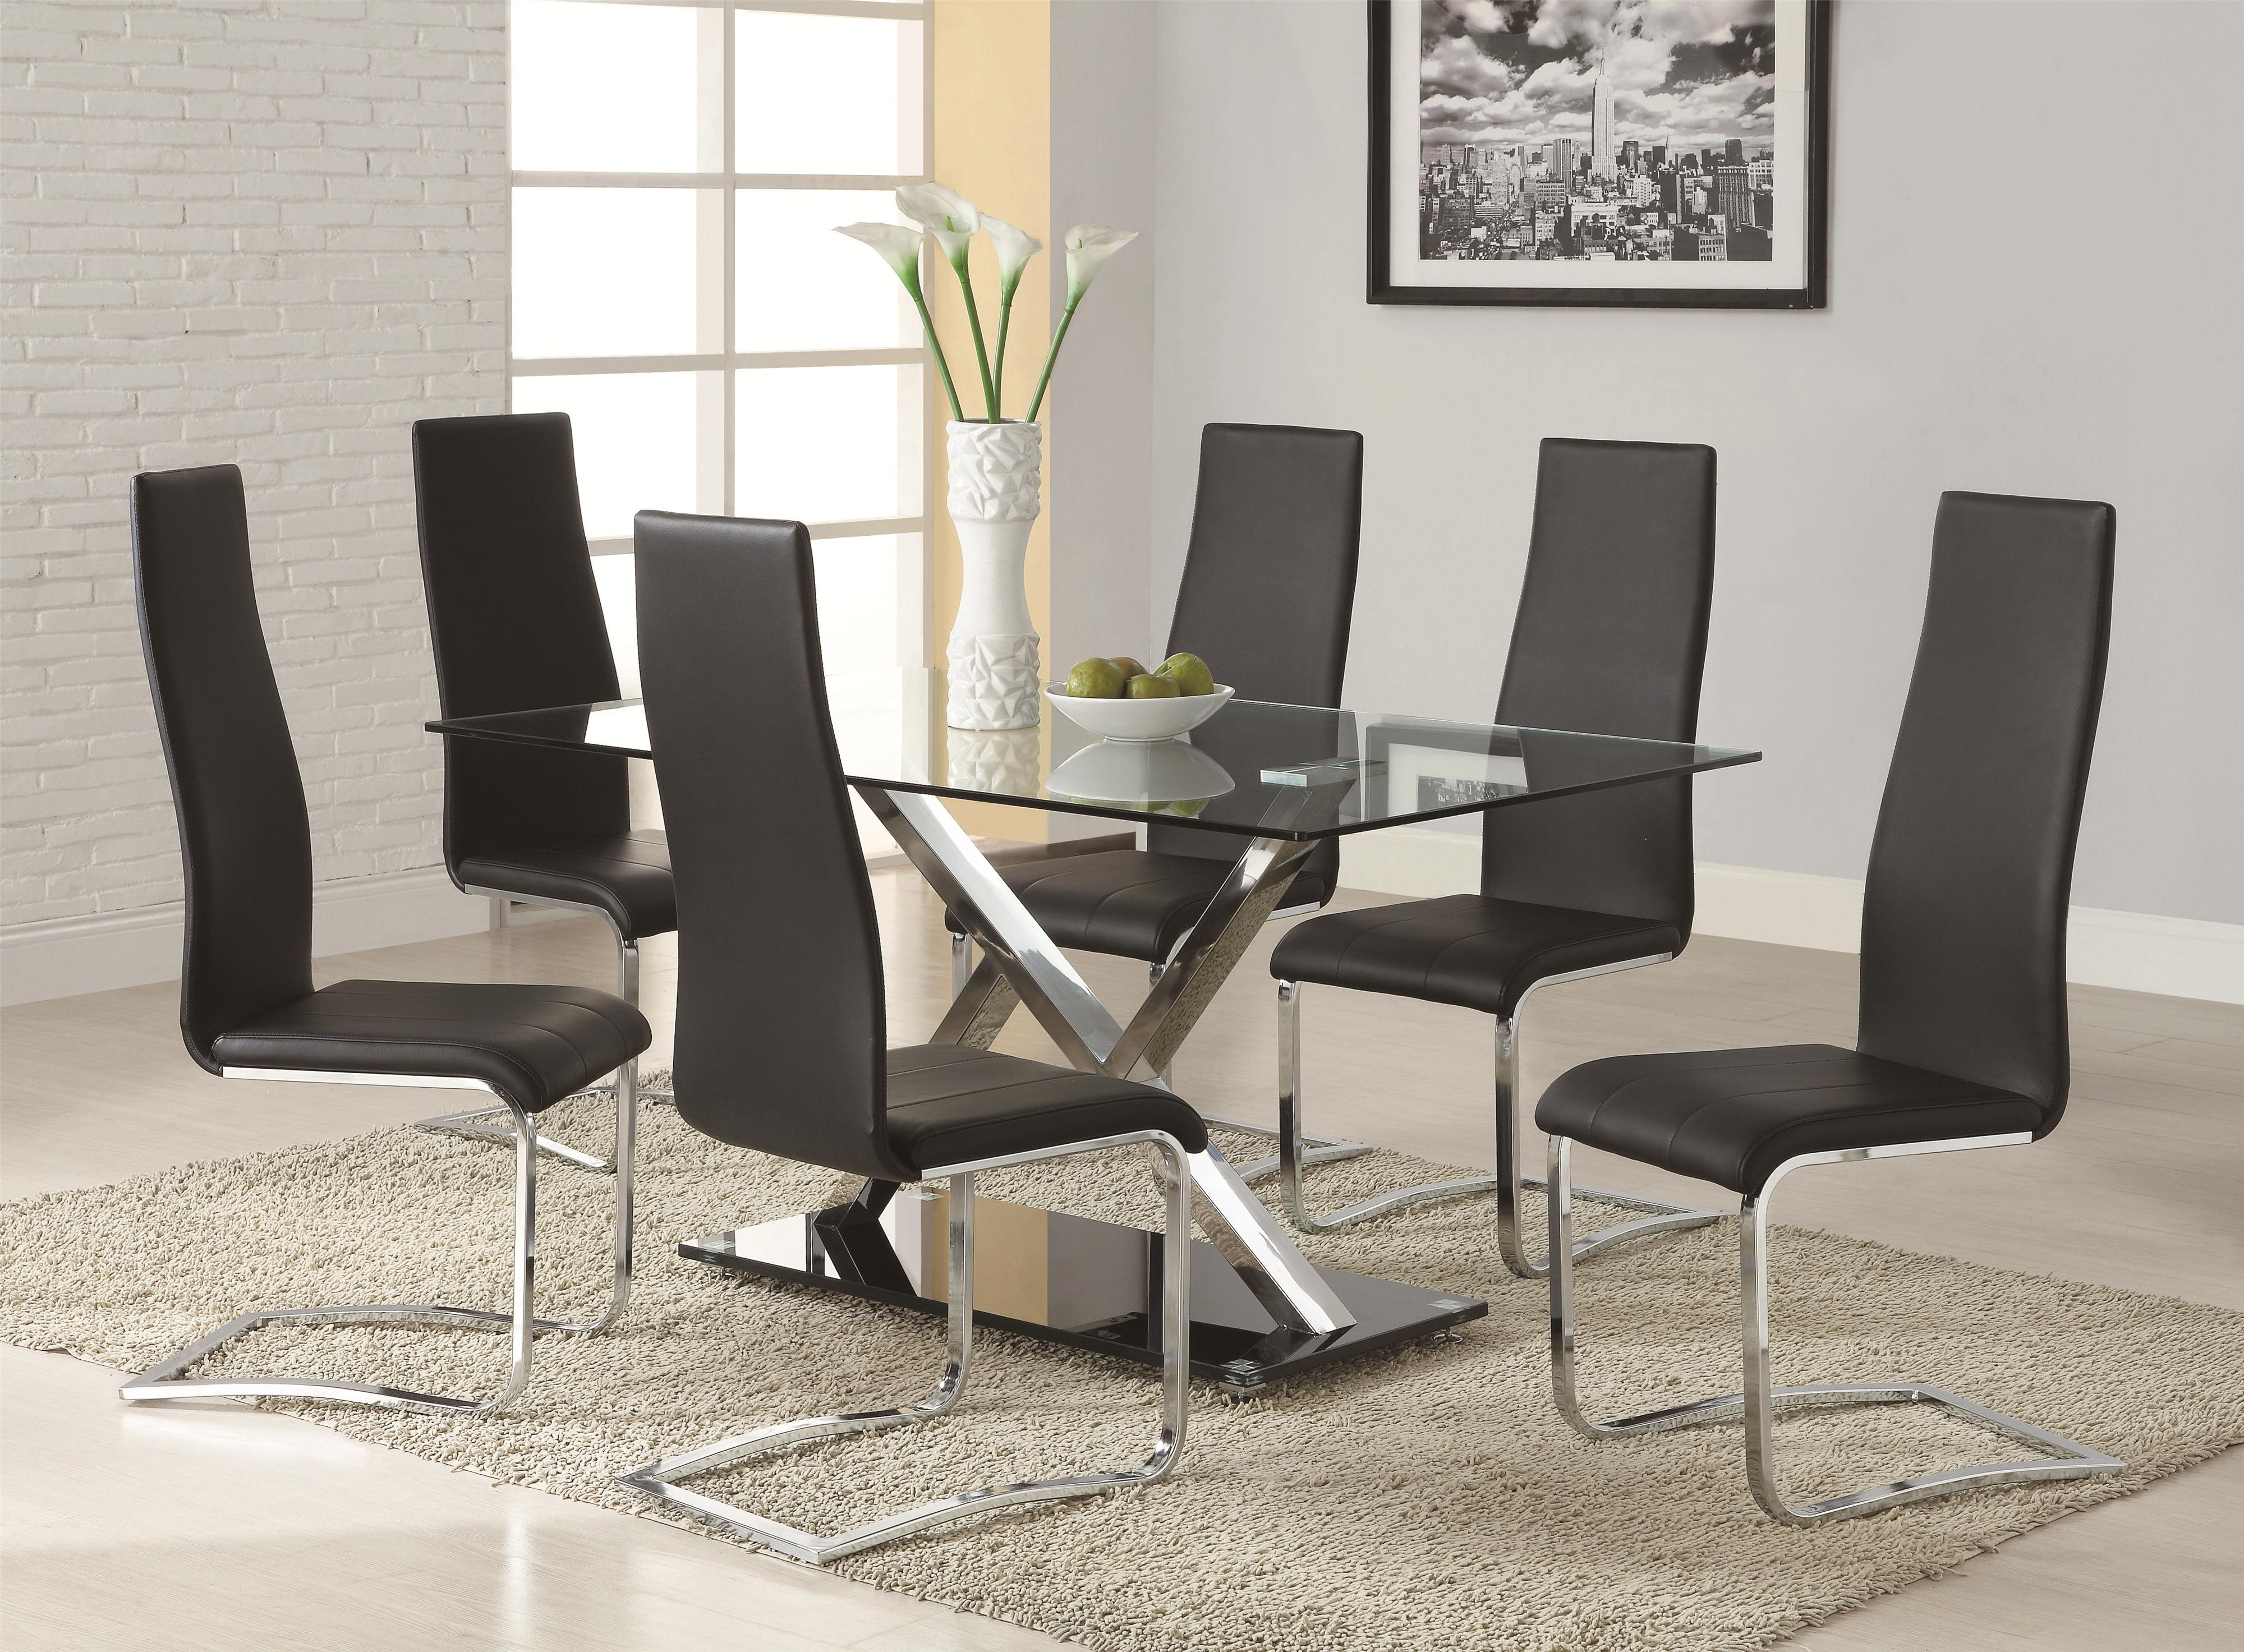 modern kitchen table sets Coaster Modern Dining 7 Piece White Table White Upholstered Chairs Set Suburban Furniture Dining 7 or more Piece Sets